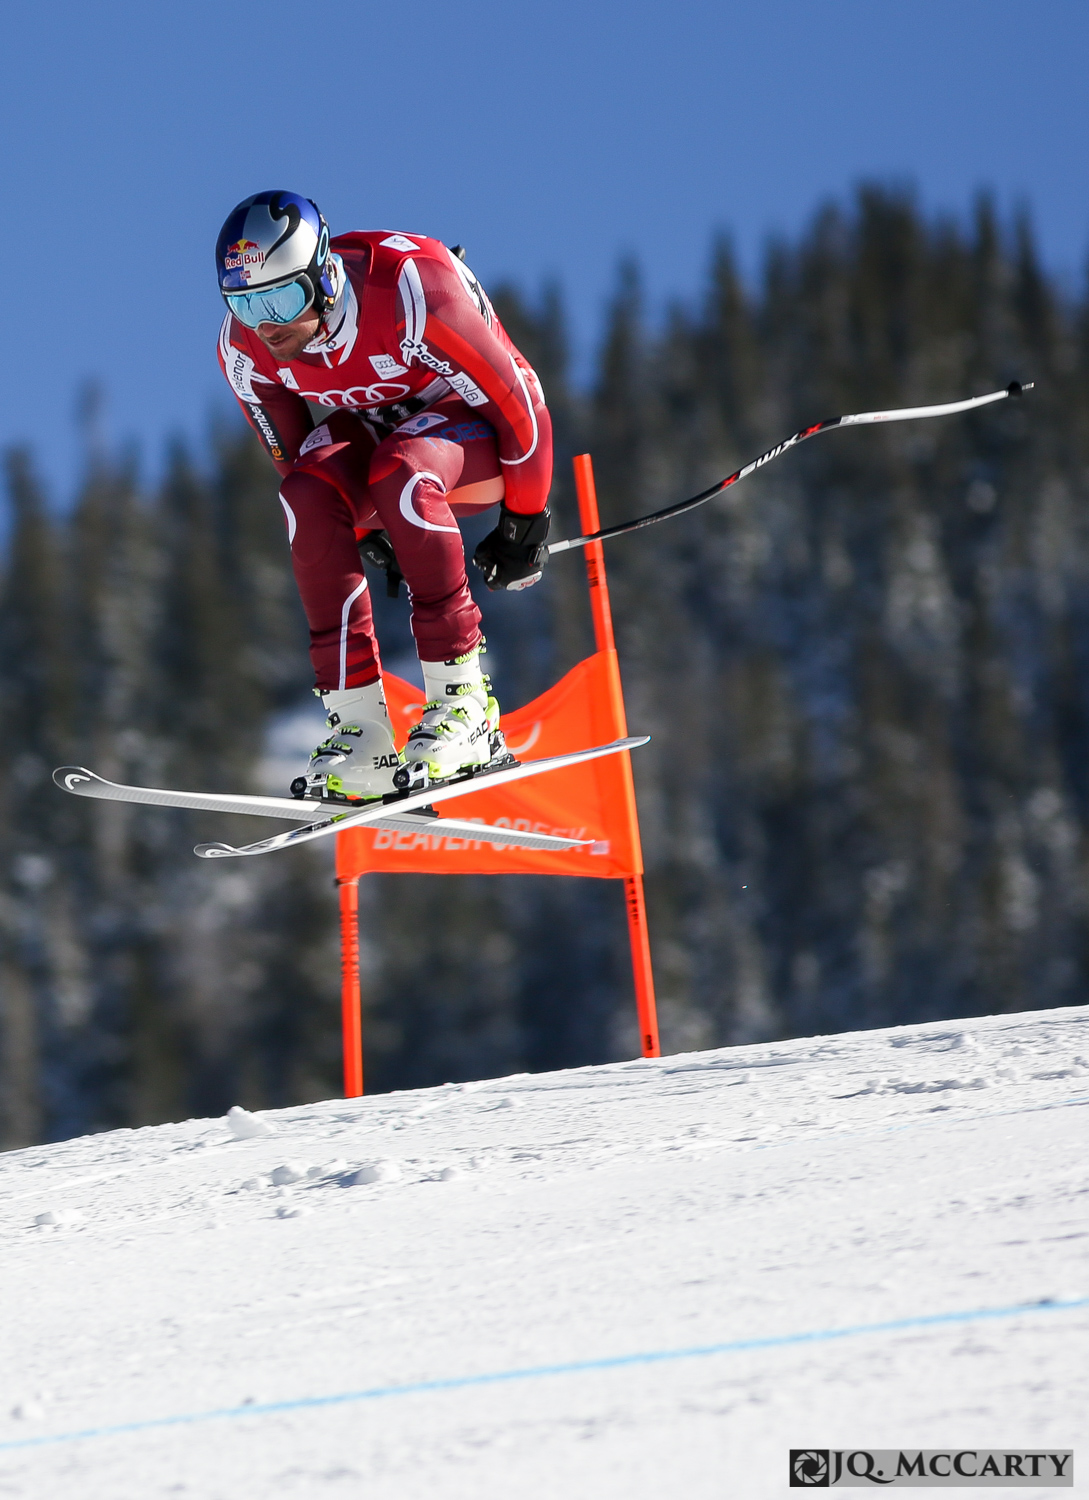 Norway's Aksel Lund Svindal leaves the snow after passing the Red Tail jump on the Birds of Prey World Cup downhill course during the first day of training Wednesday in Beaver Creek.